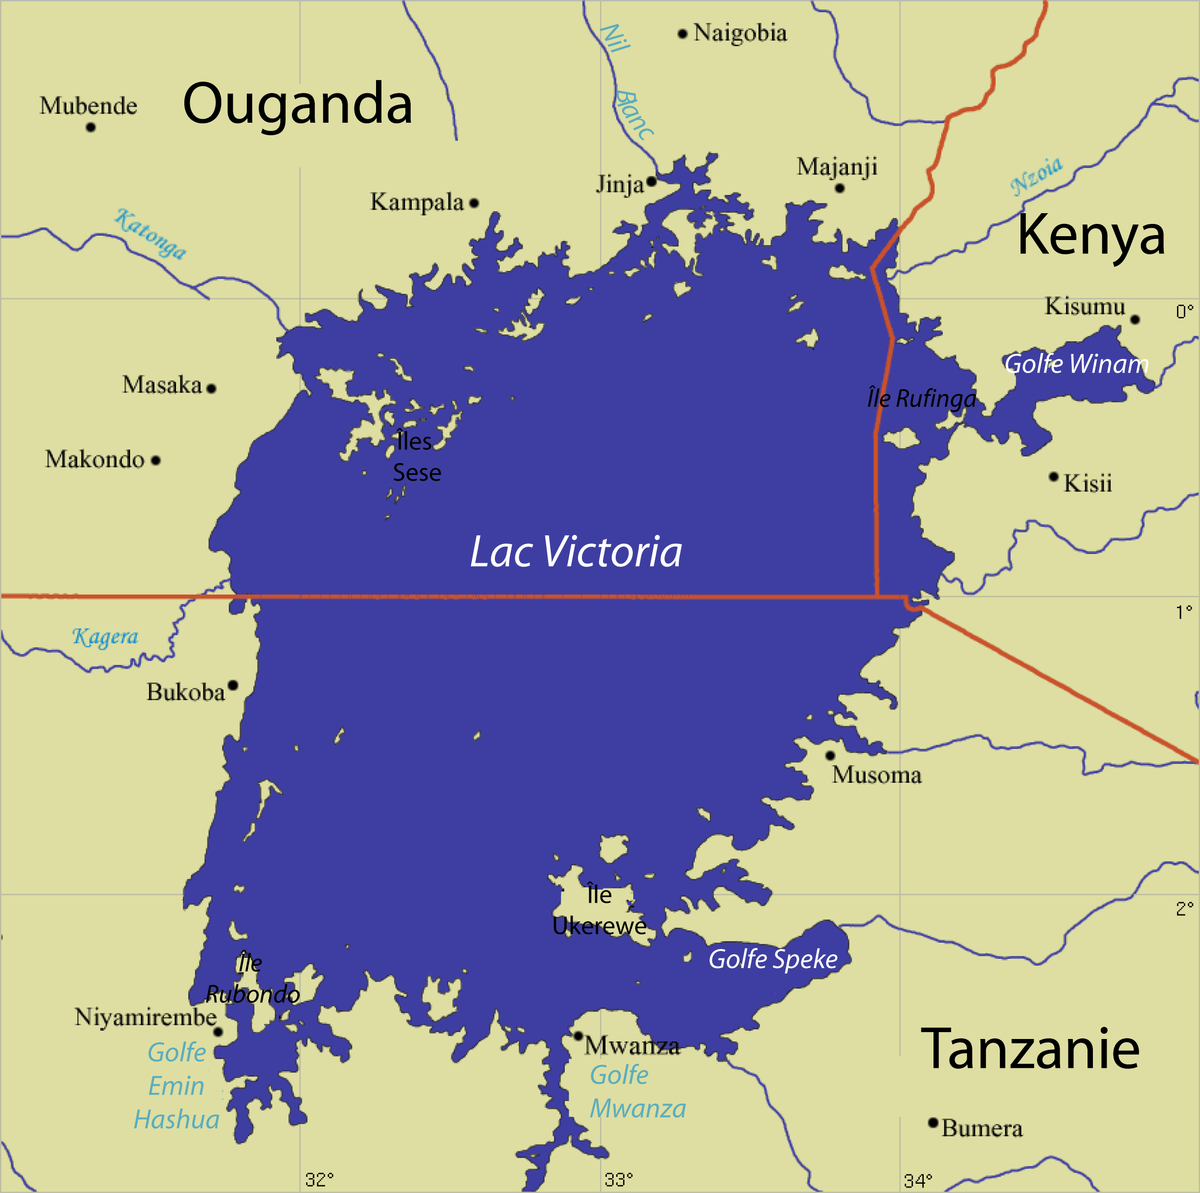 Lake Victoria: Luo Dialect